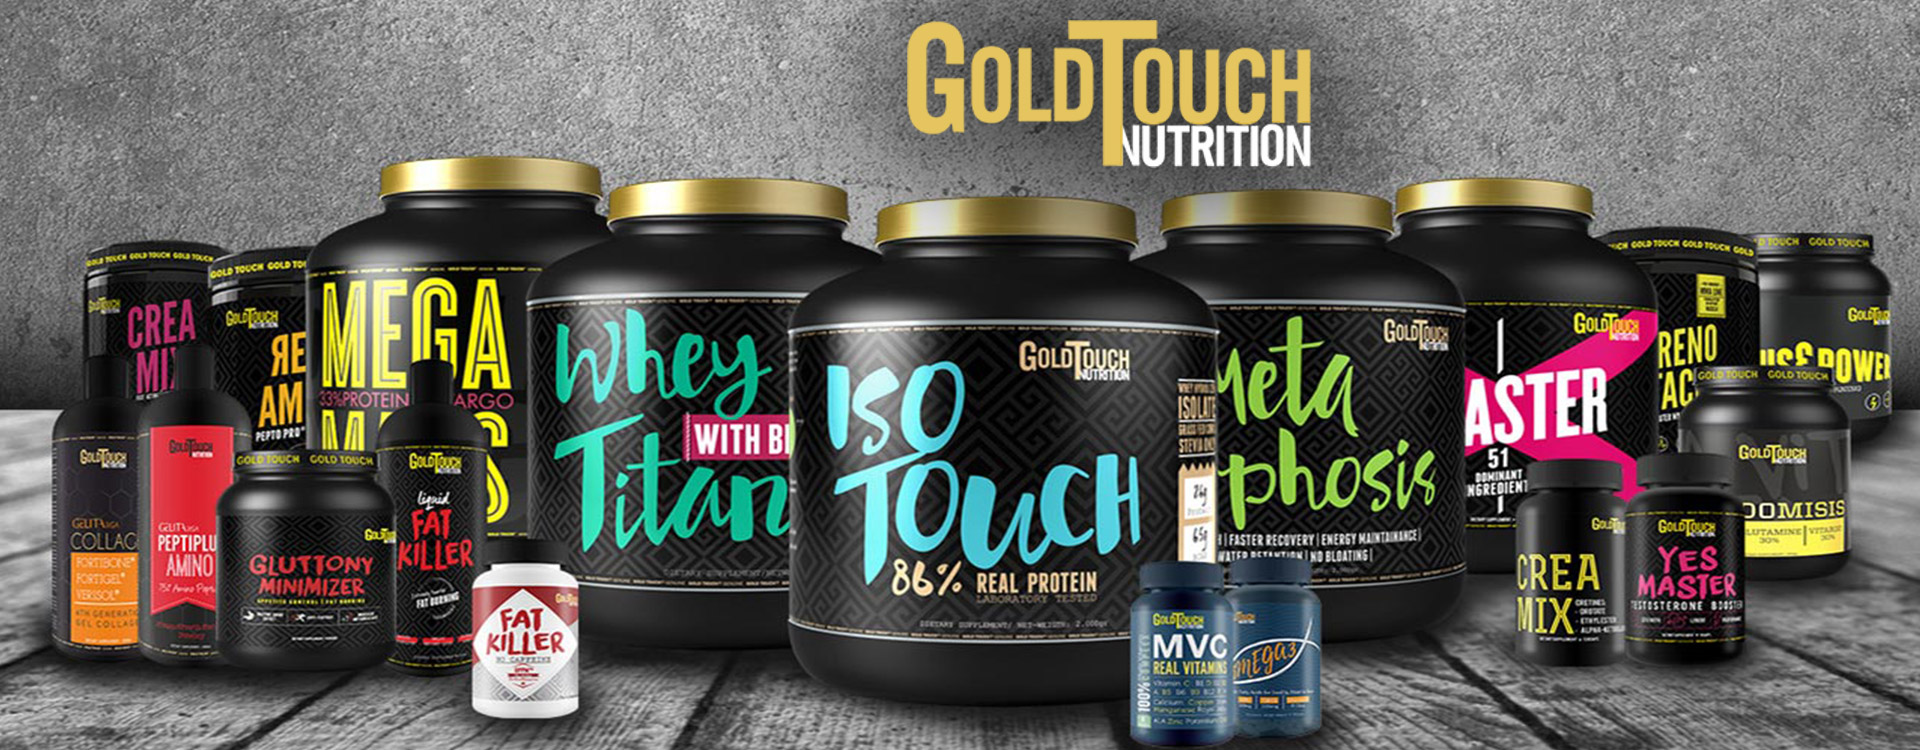 GOLDTOUCH